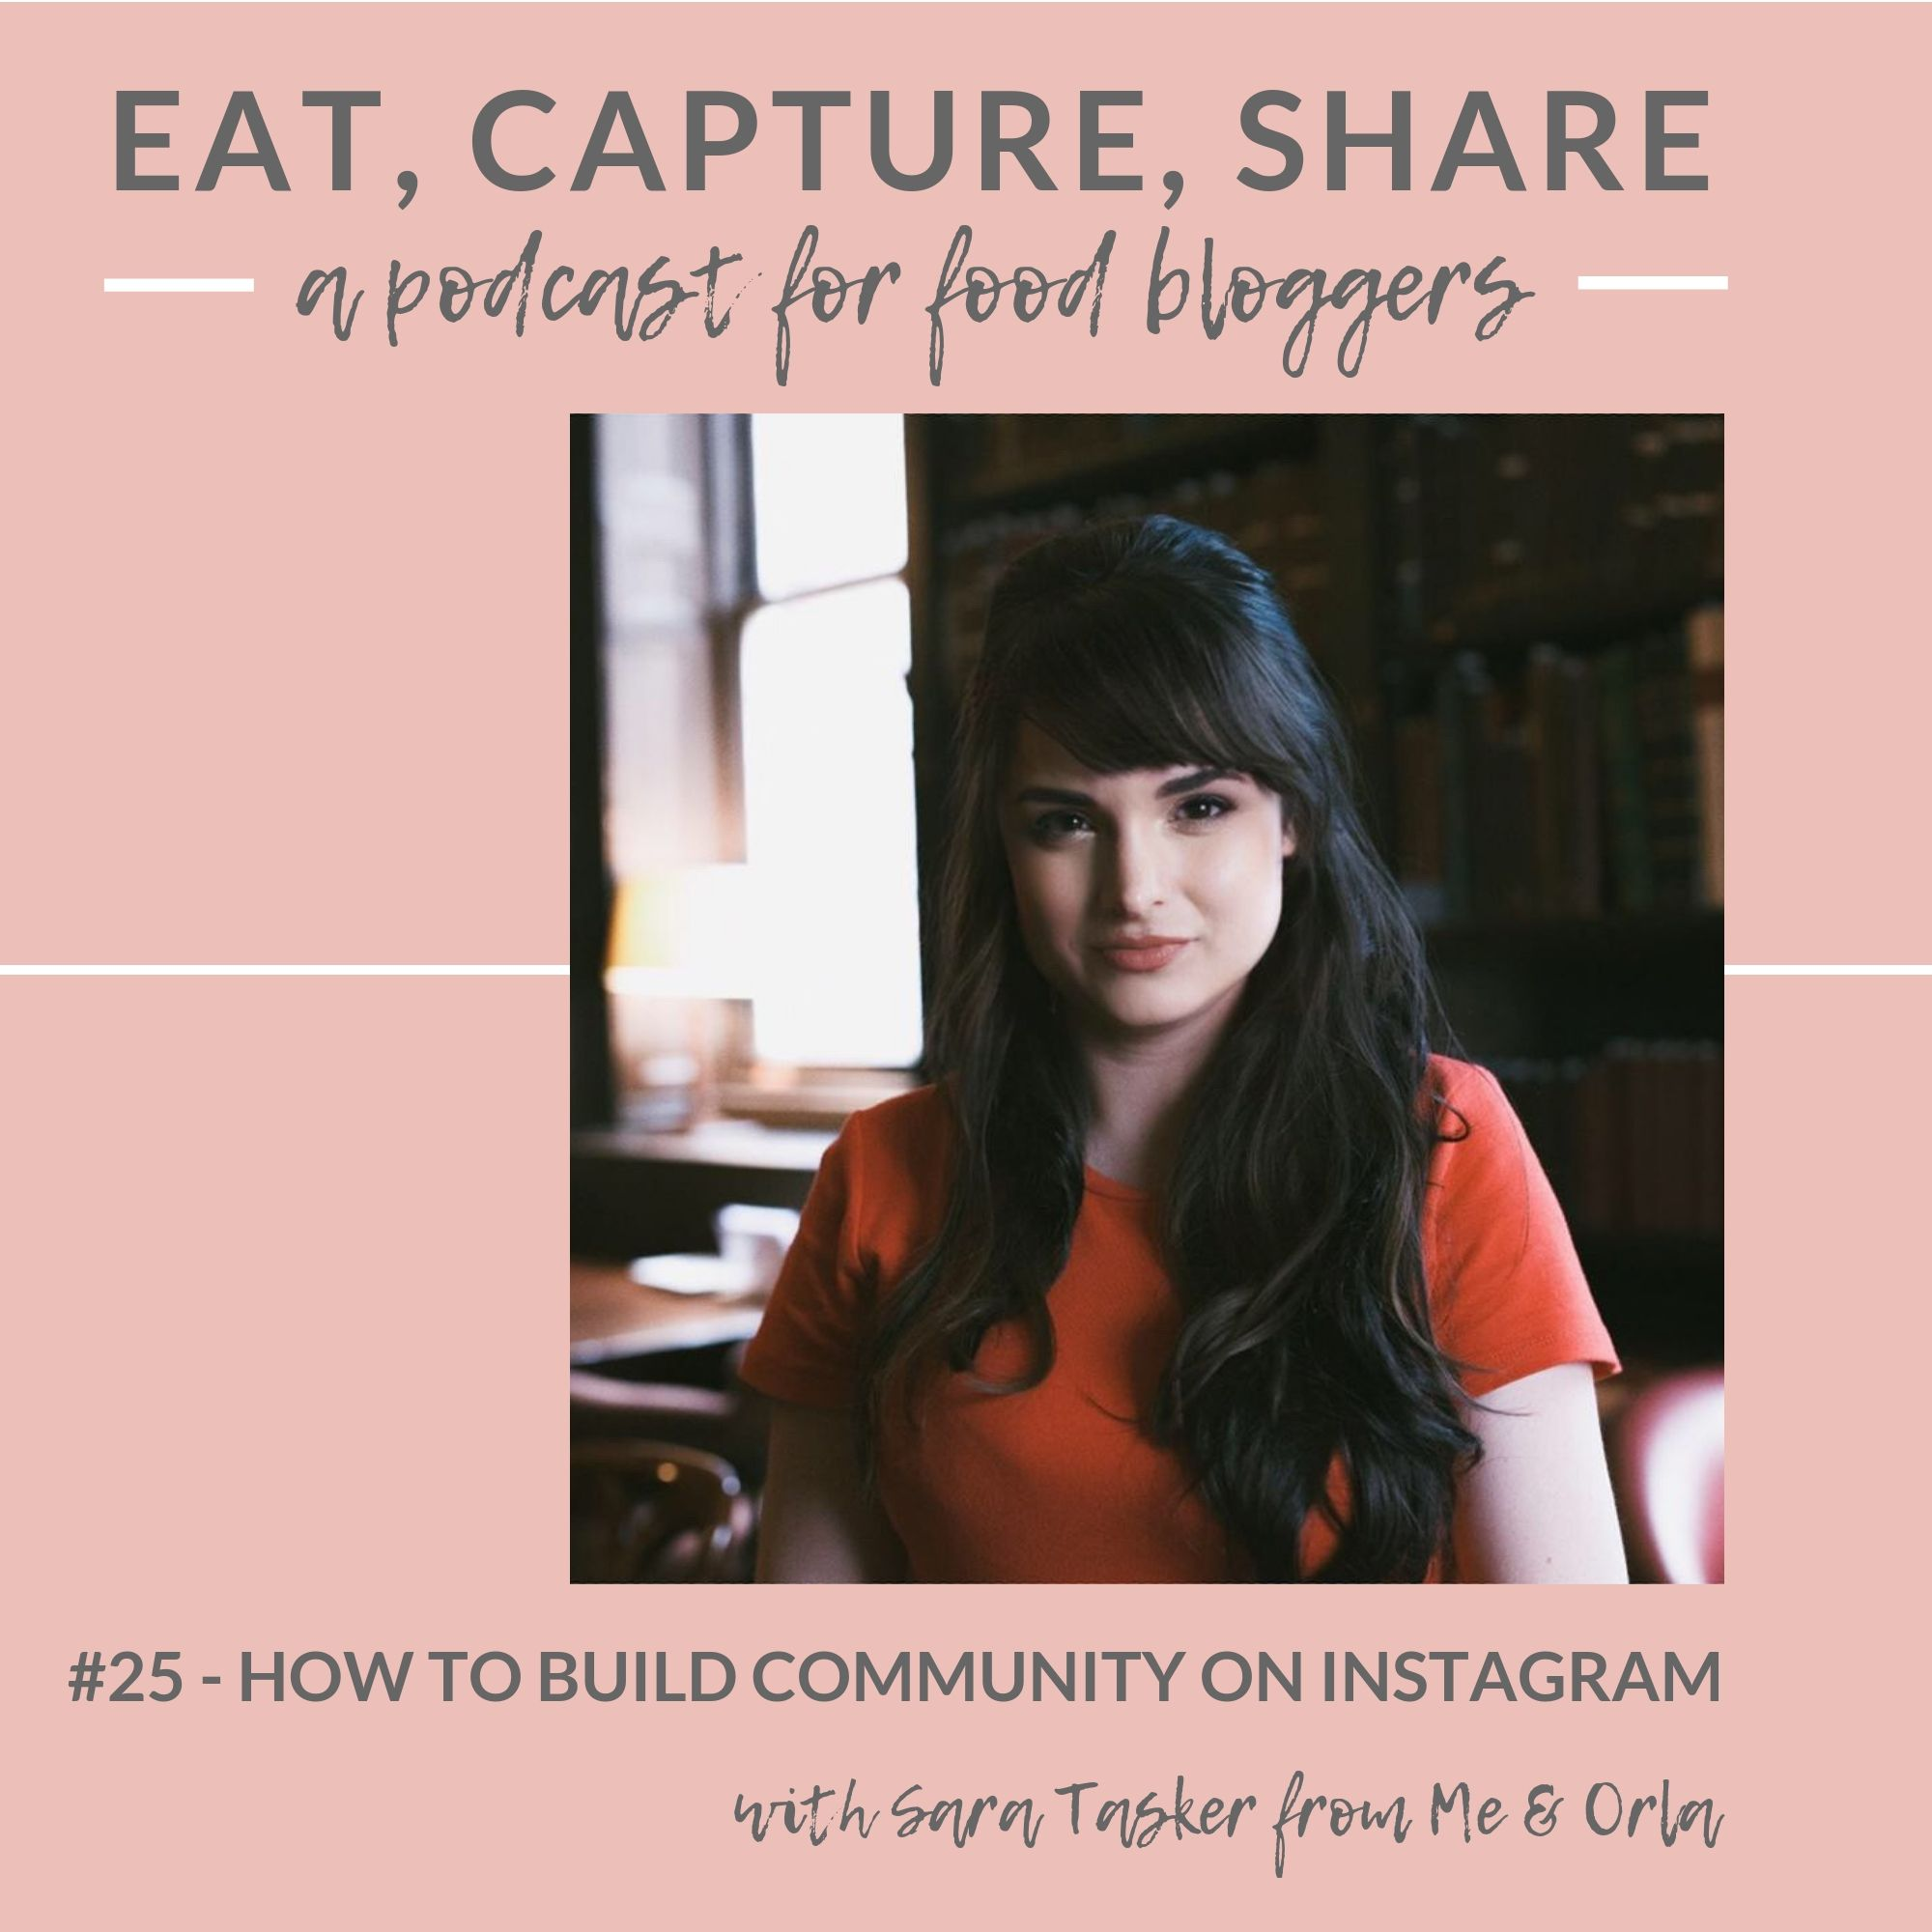 How to build community on instagram with Sara Tasker - Eat, Capture, Share Podcast